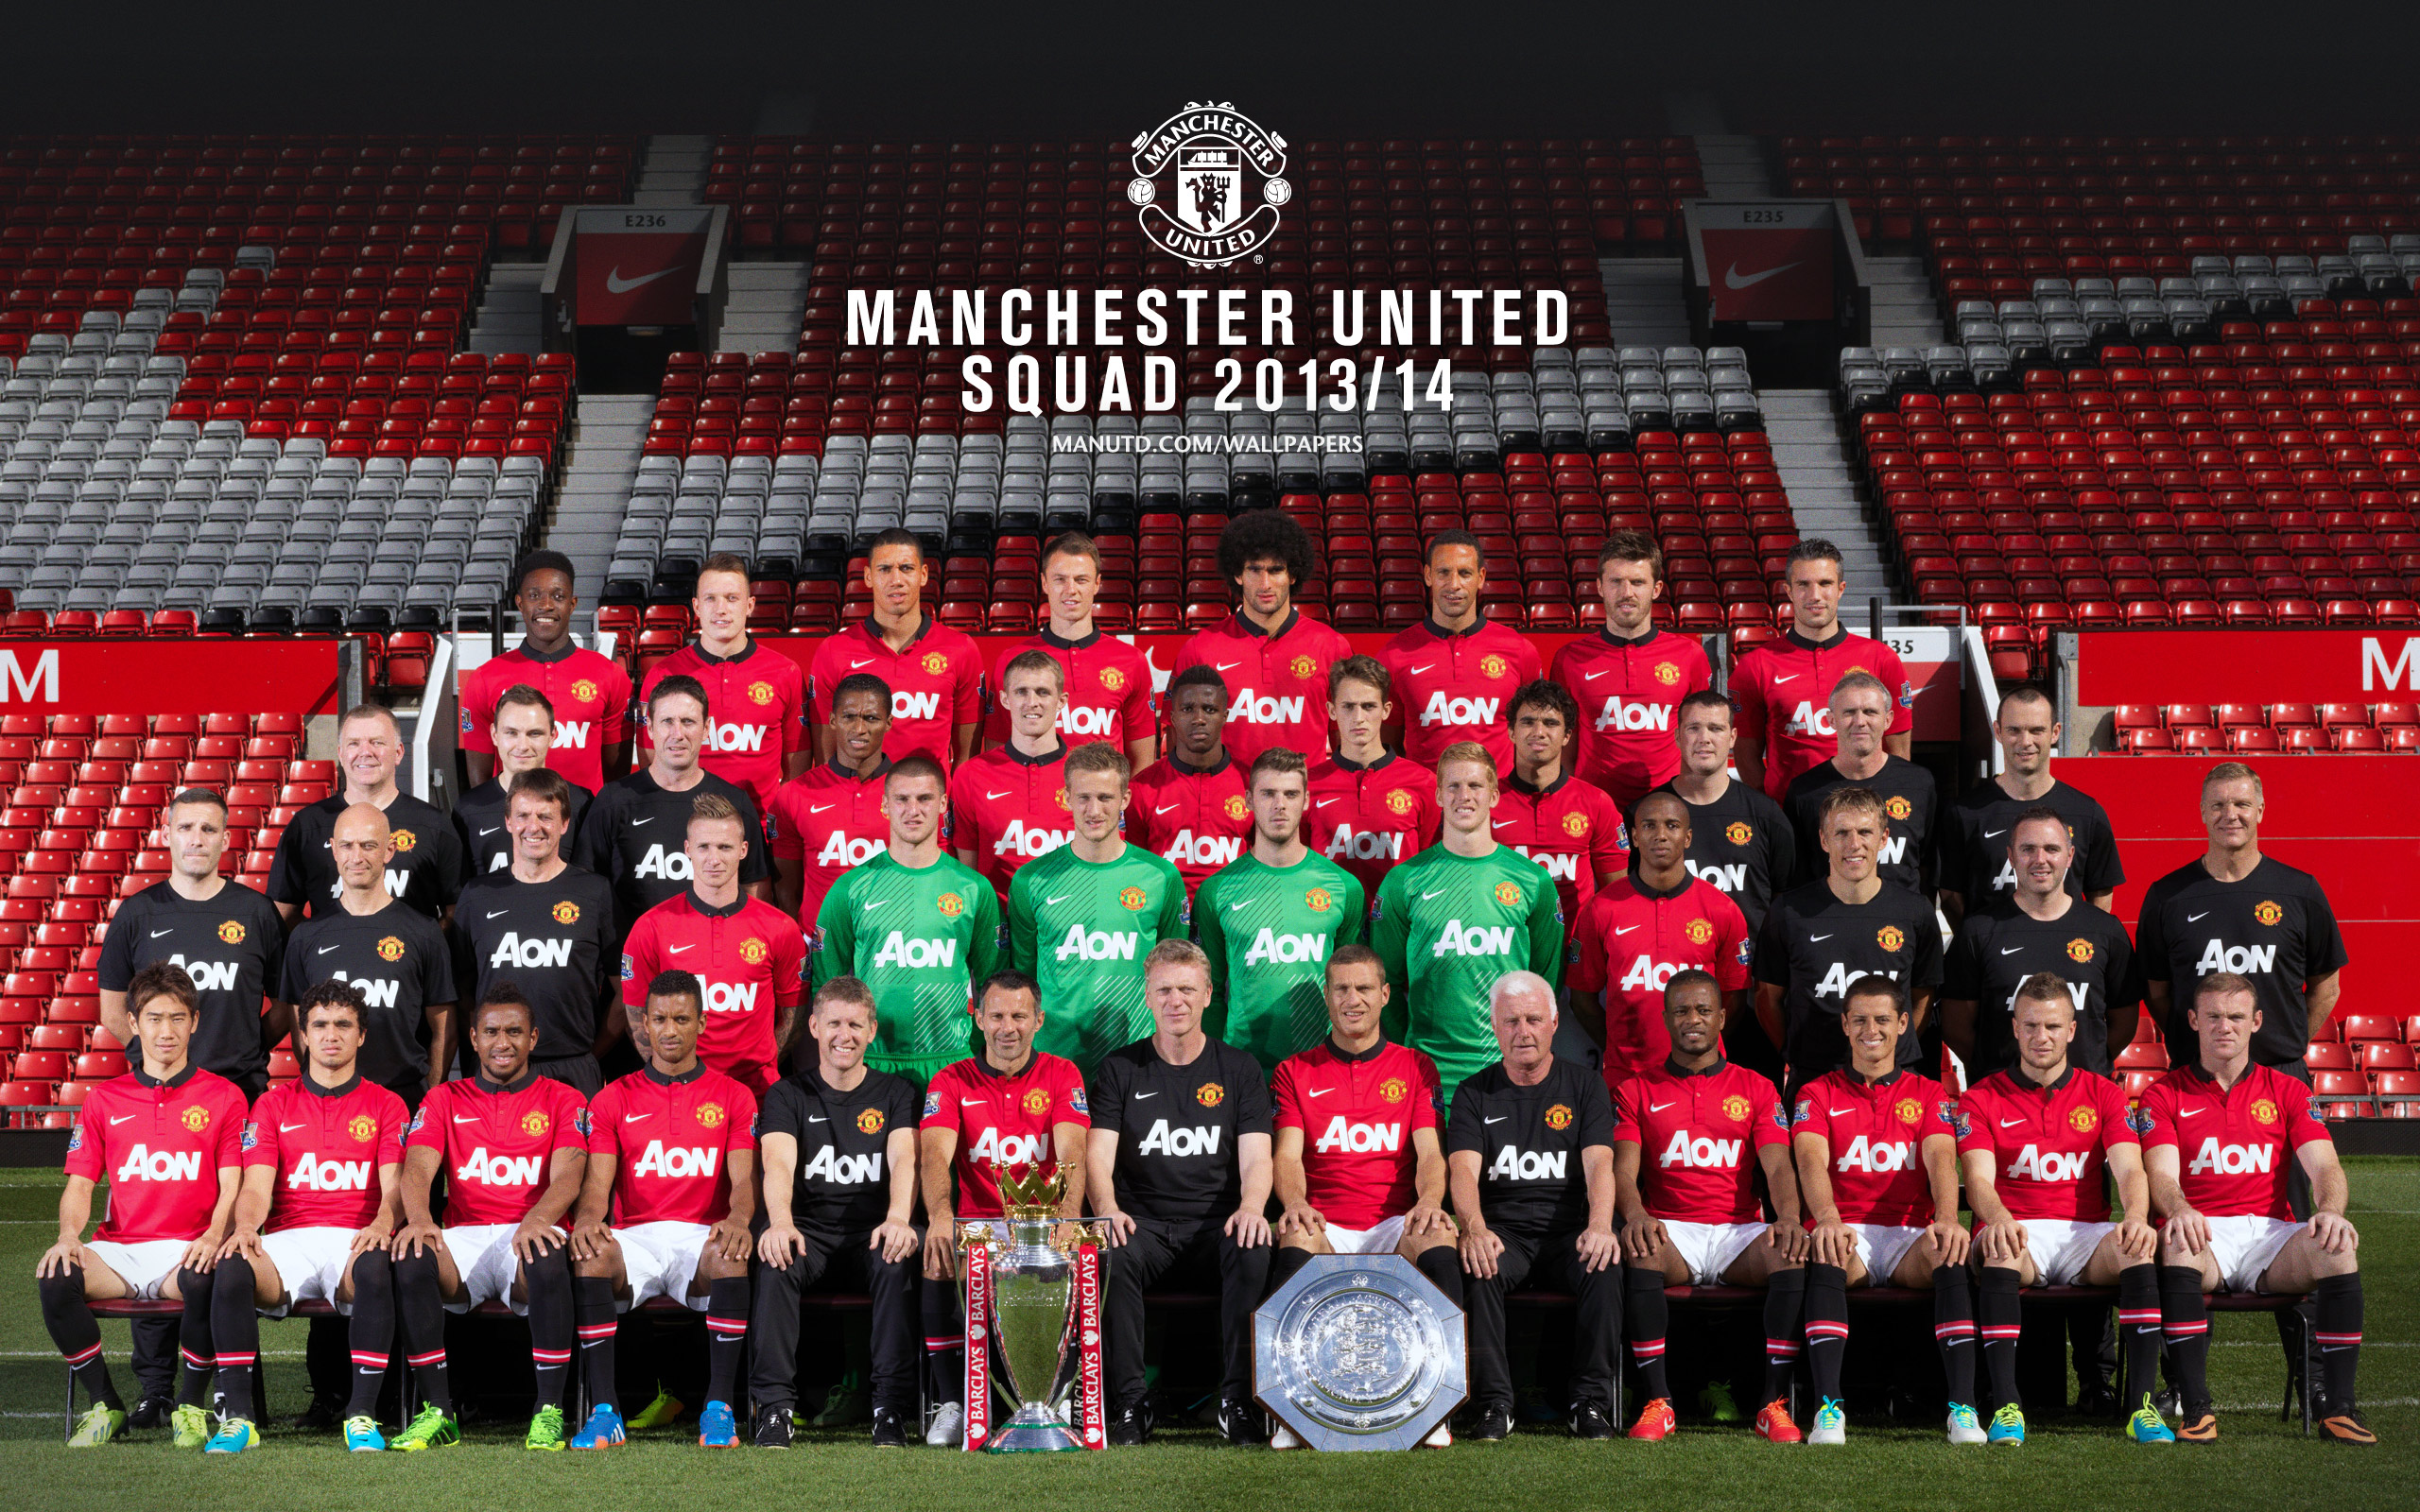 Players manchester united wallpaper manchester united squad 2013 2014 wallpaper voltagebd Choice Image